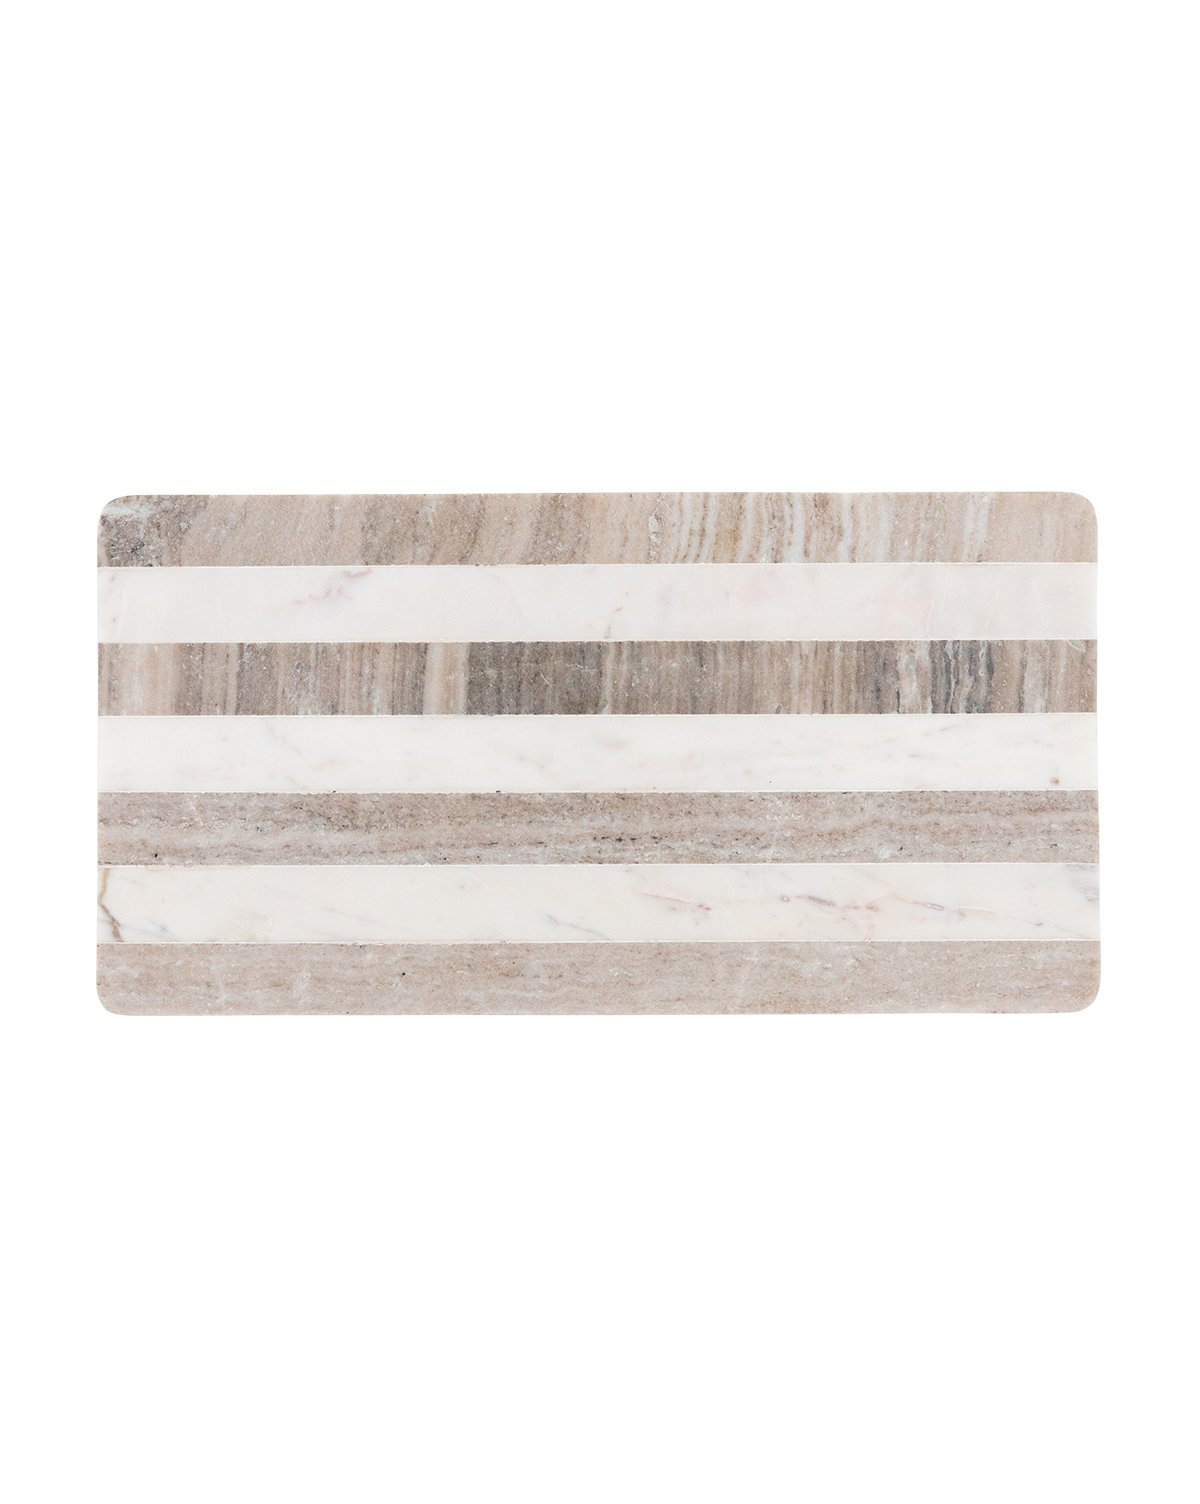 Striped_Marble_Tray1.jpg